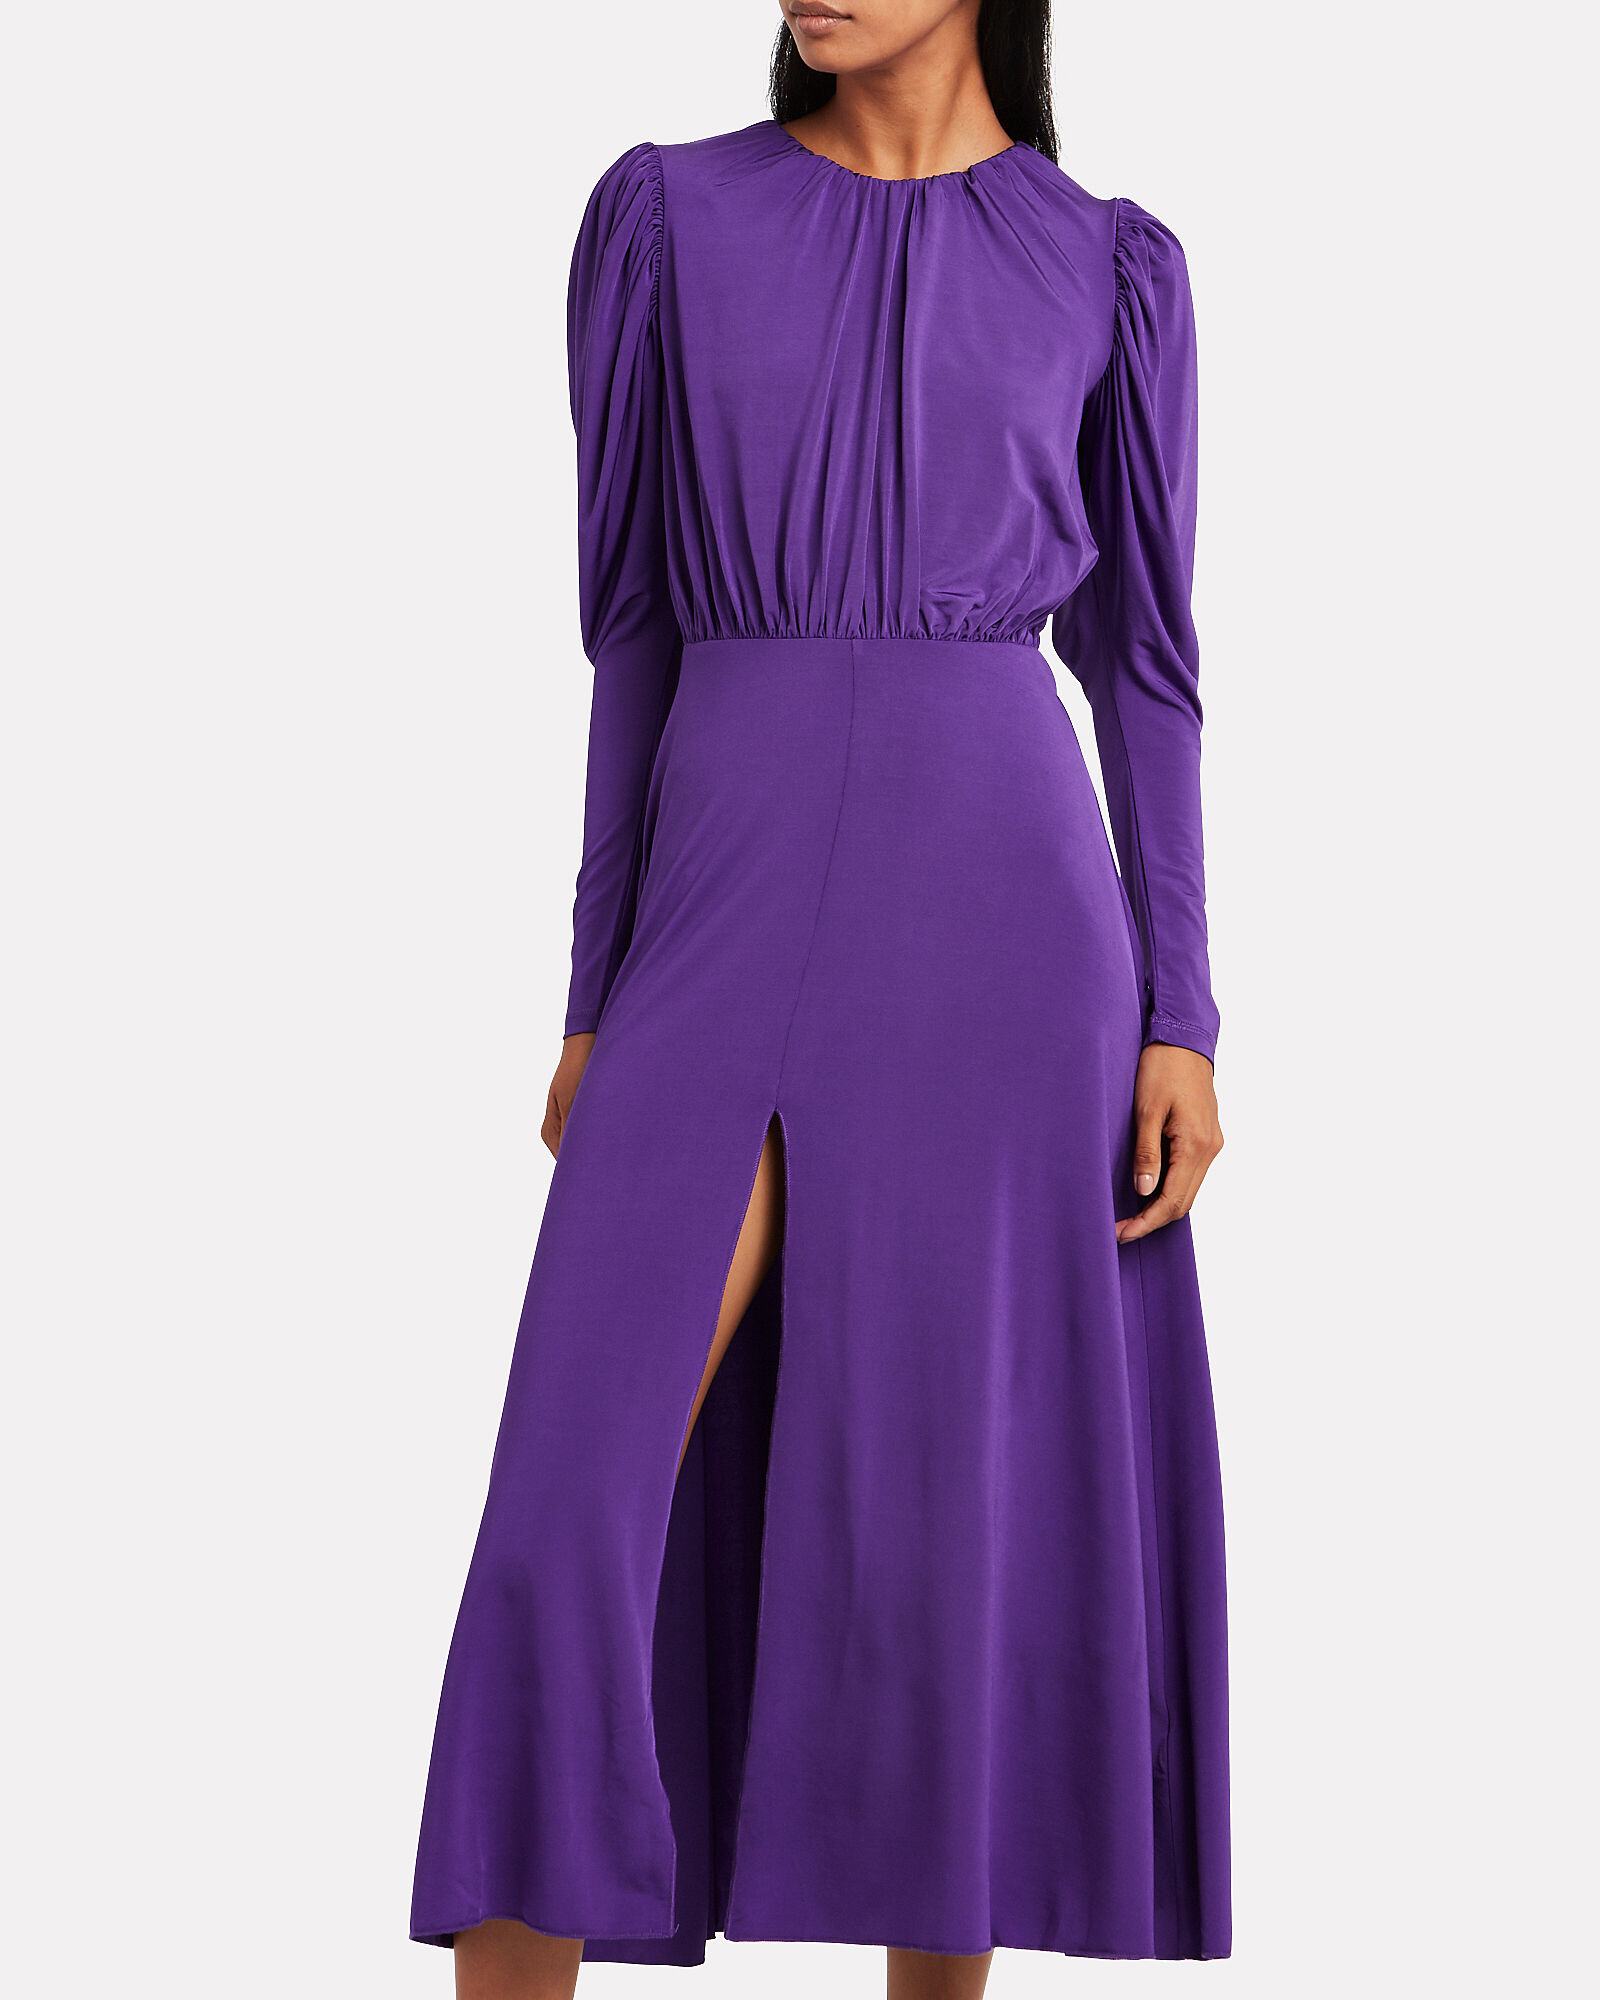 No. 57 Open Back Crepe Dress, PRISM VIOLET, hi-res